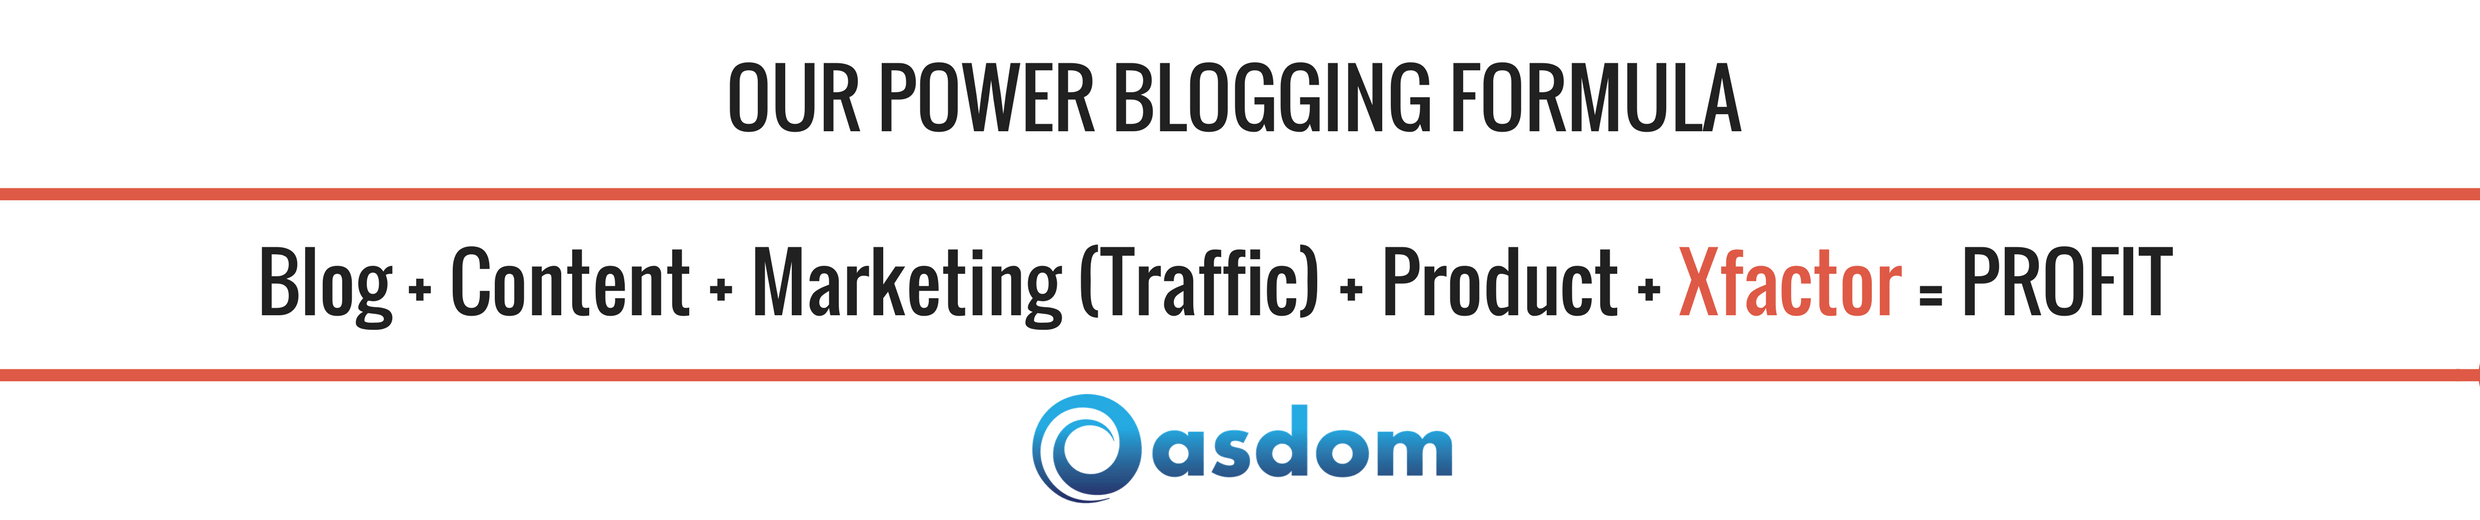 oasdom.com power blogging formula